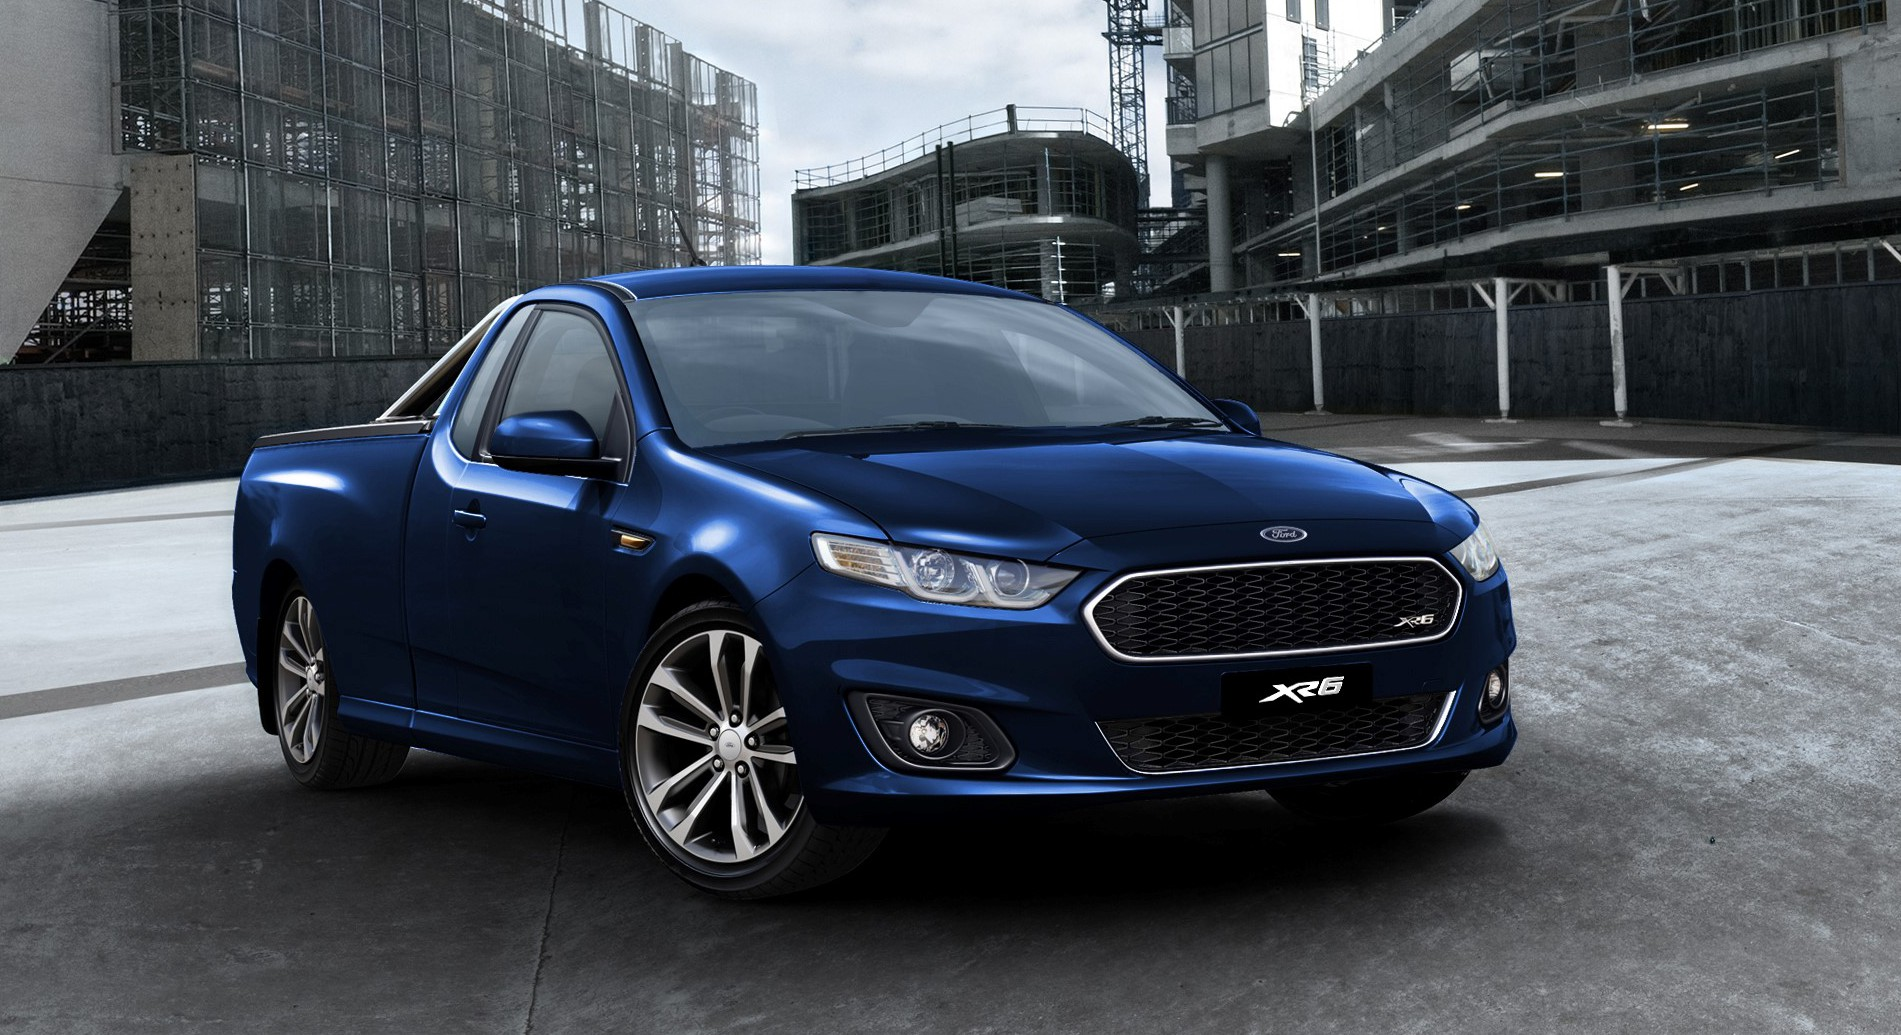 2015 Ford Falcon Sedan And Ford Falcon Ute Pricing